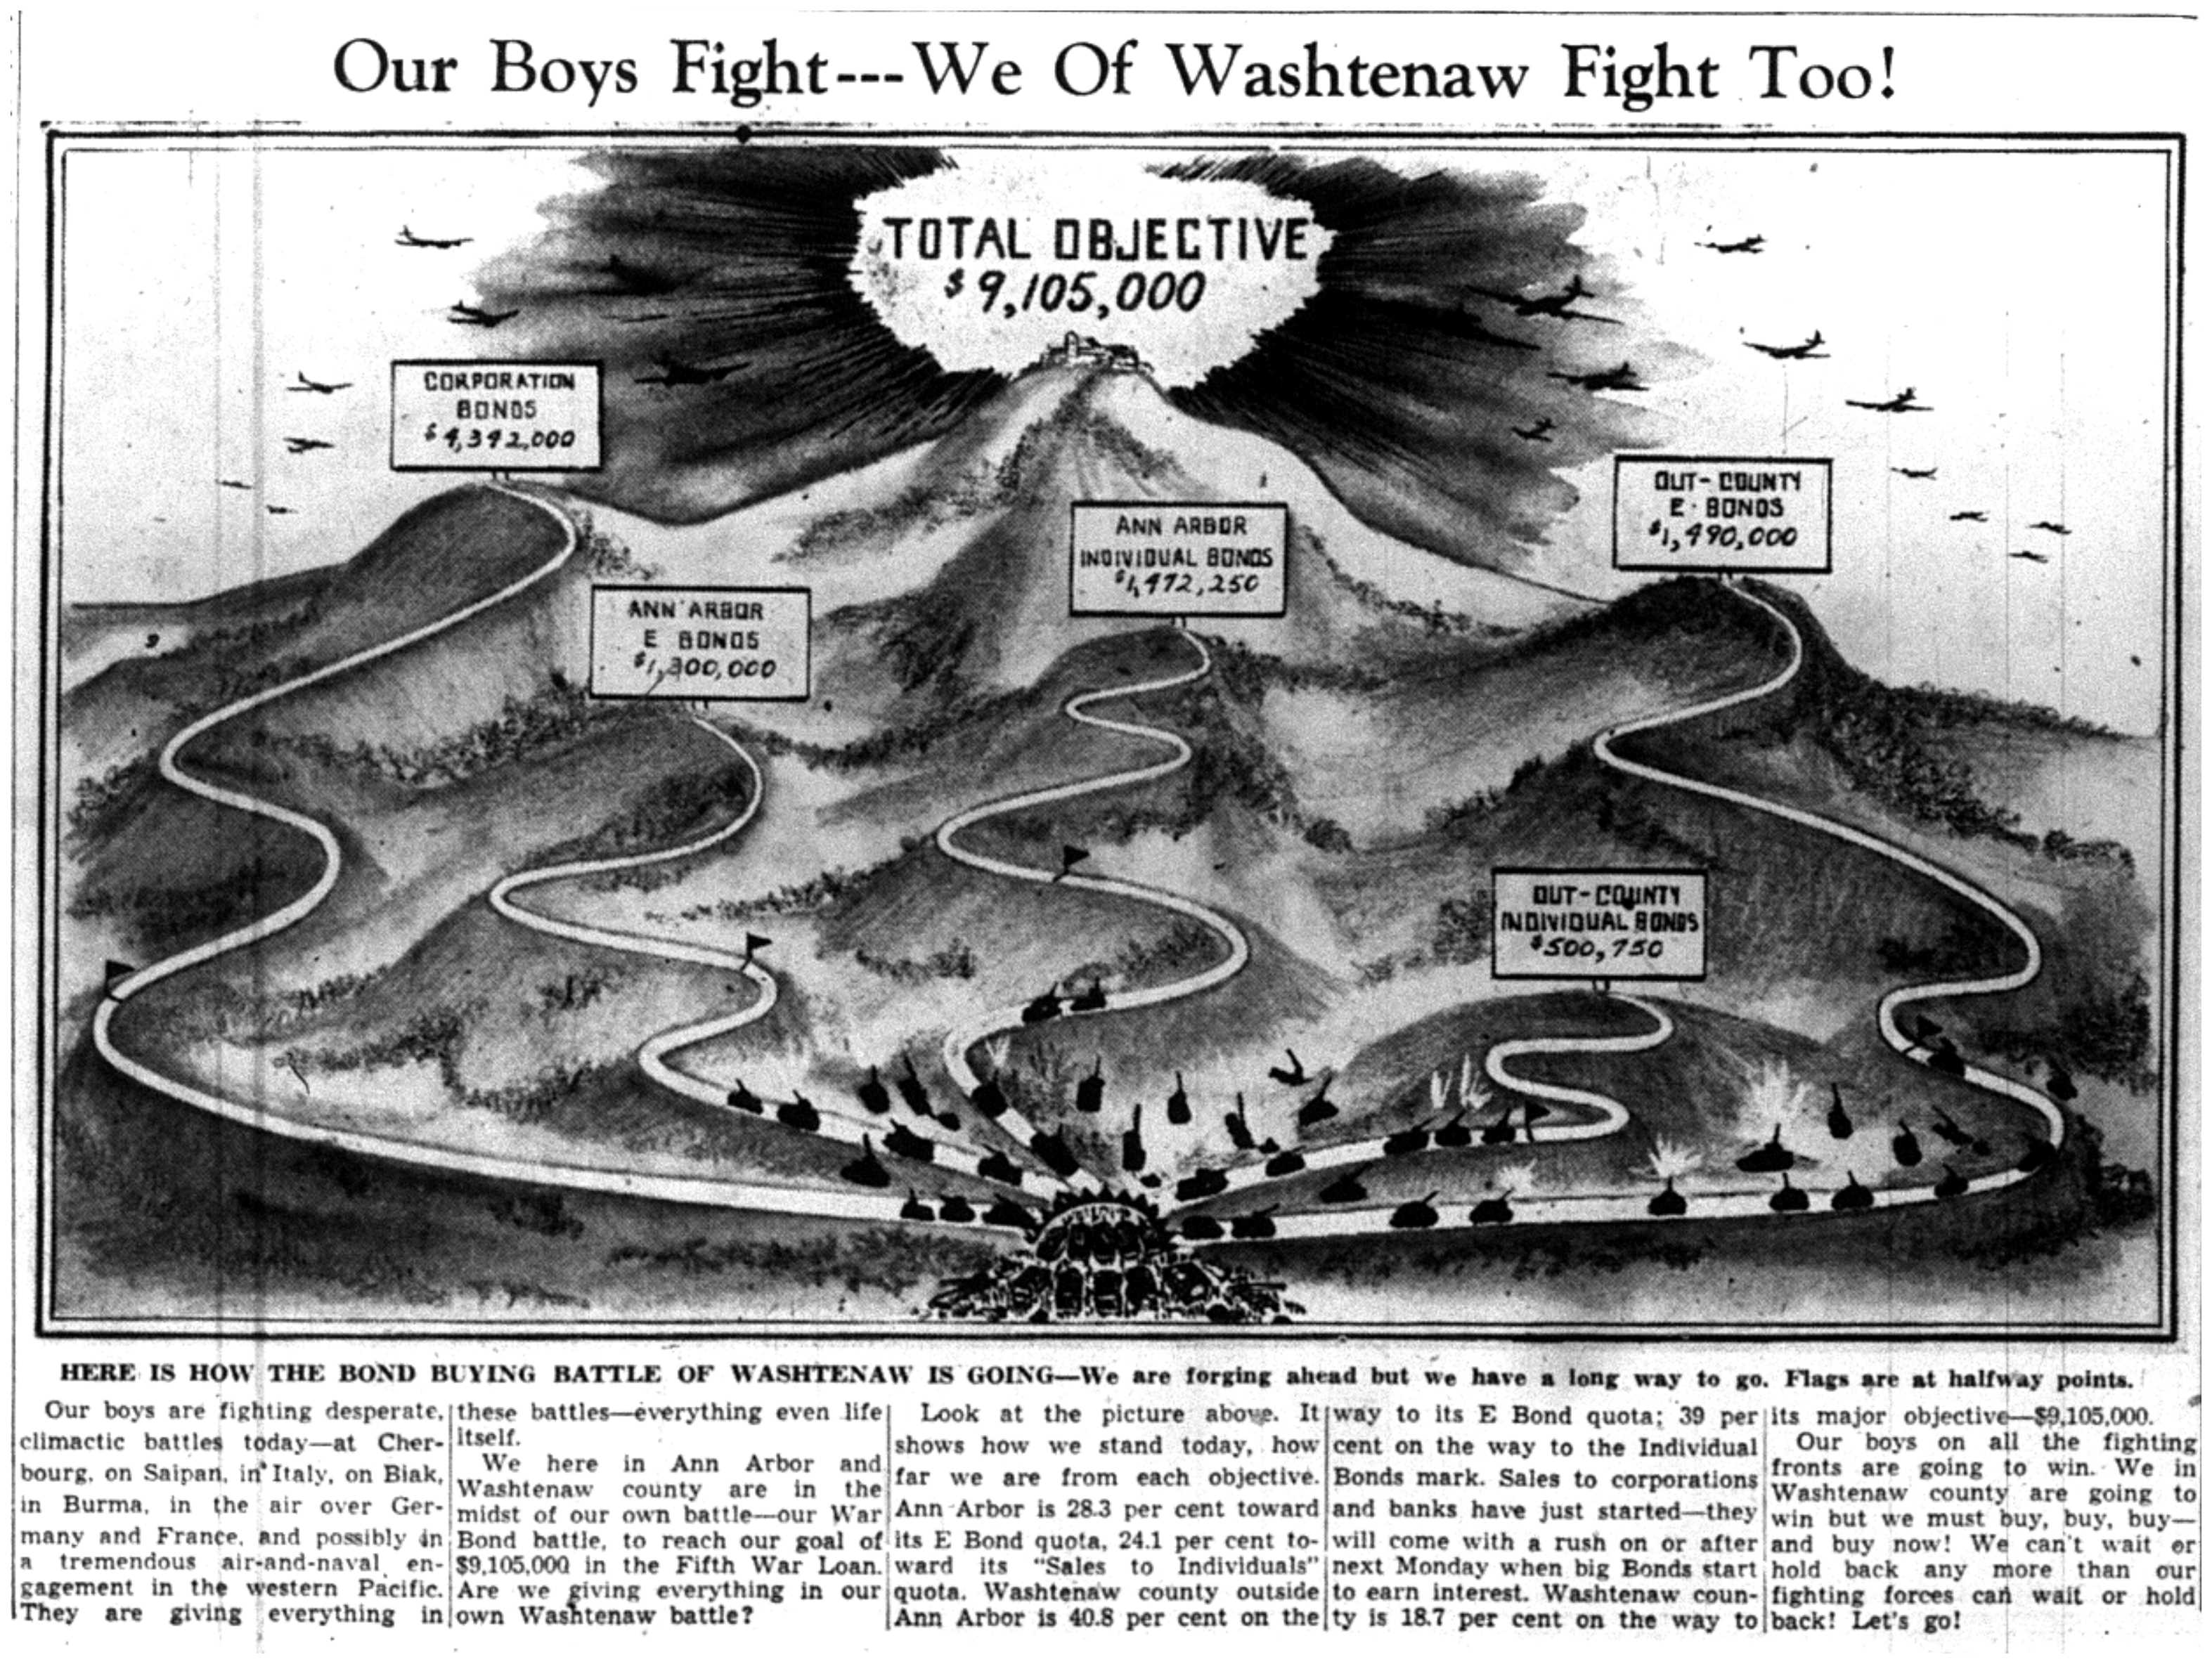 Our Boys Fight - We Of Washtenaw Fight Too image